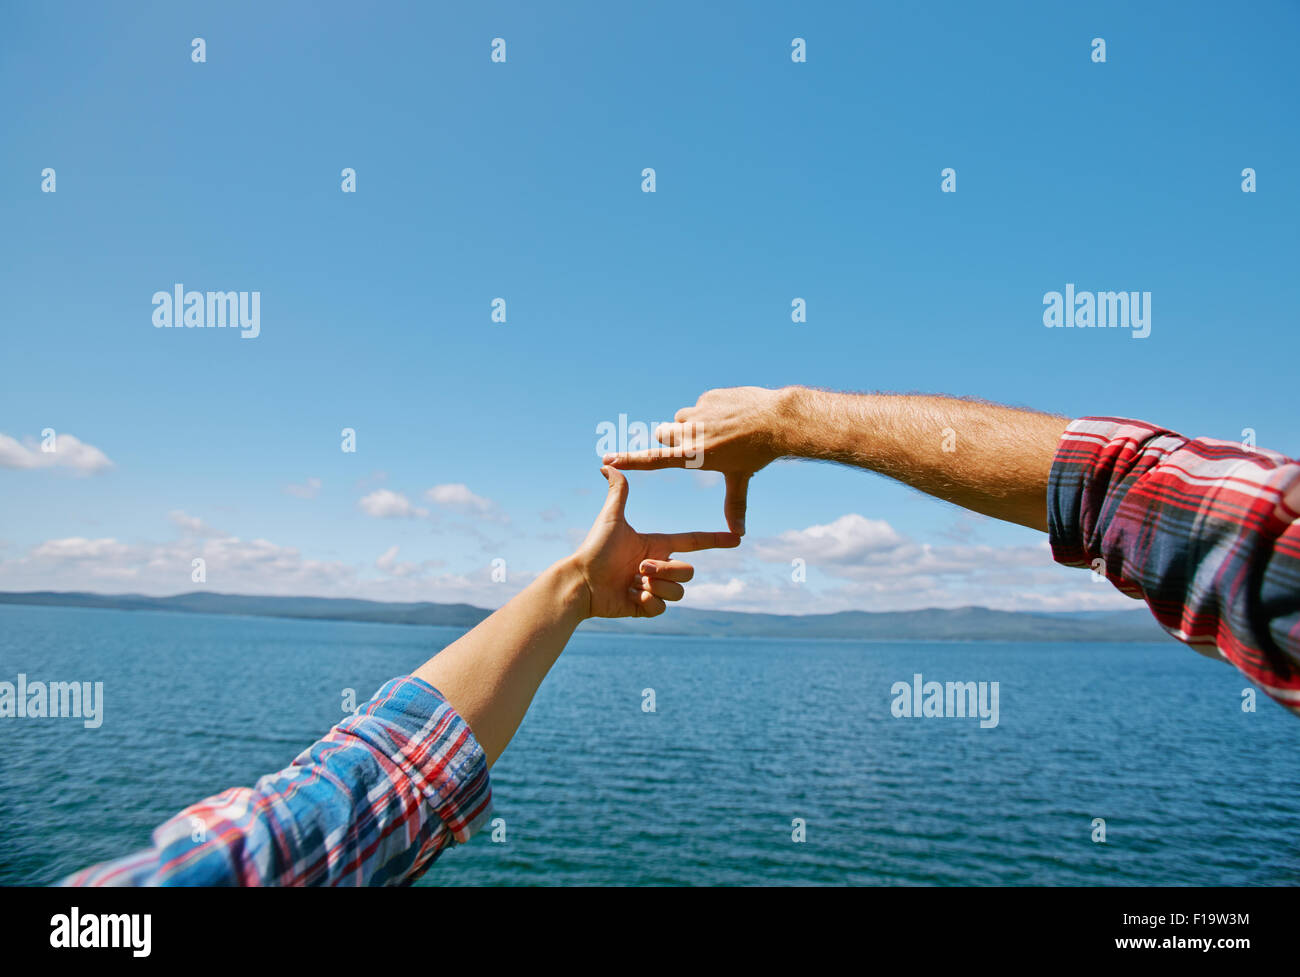 Human hands making frame against blue sky by the seaside - Stock Image